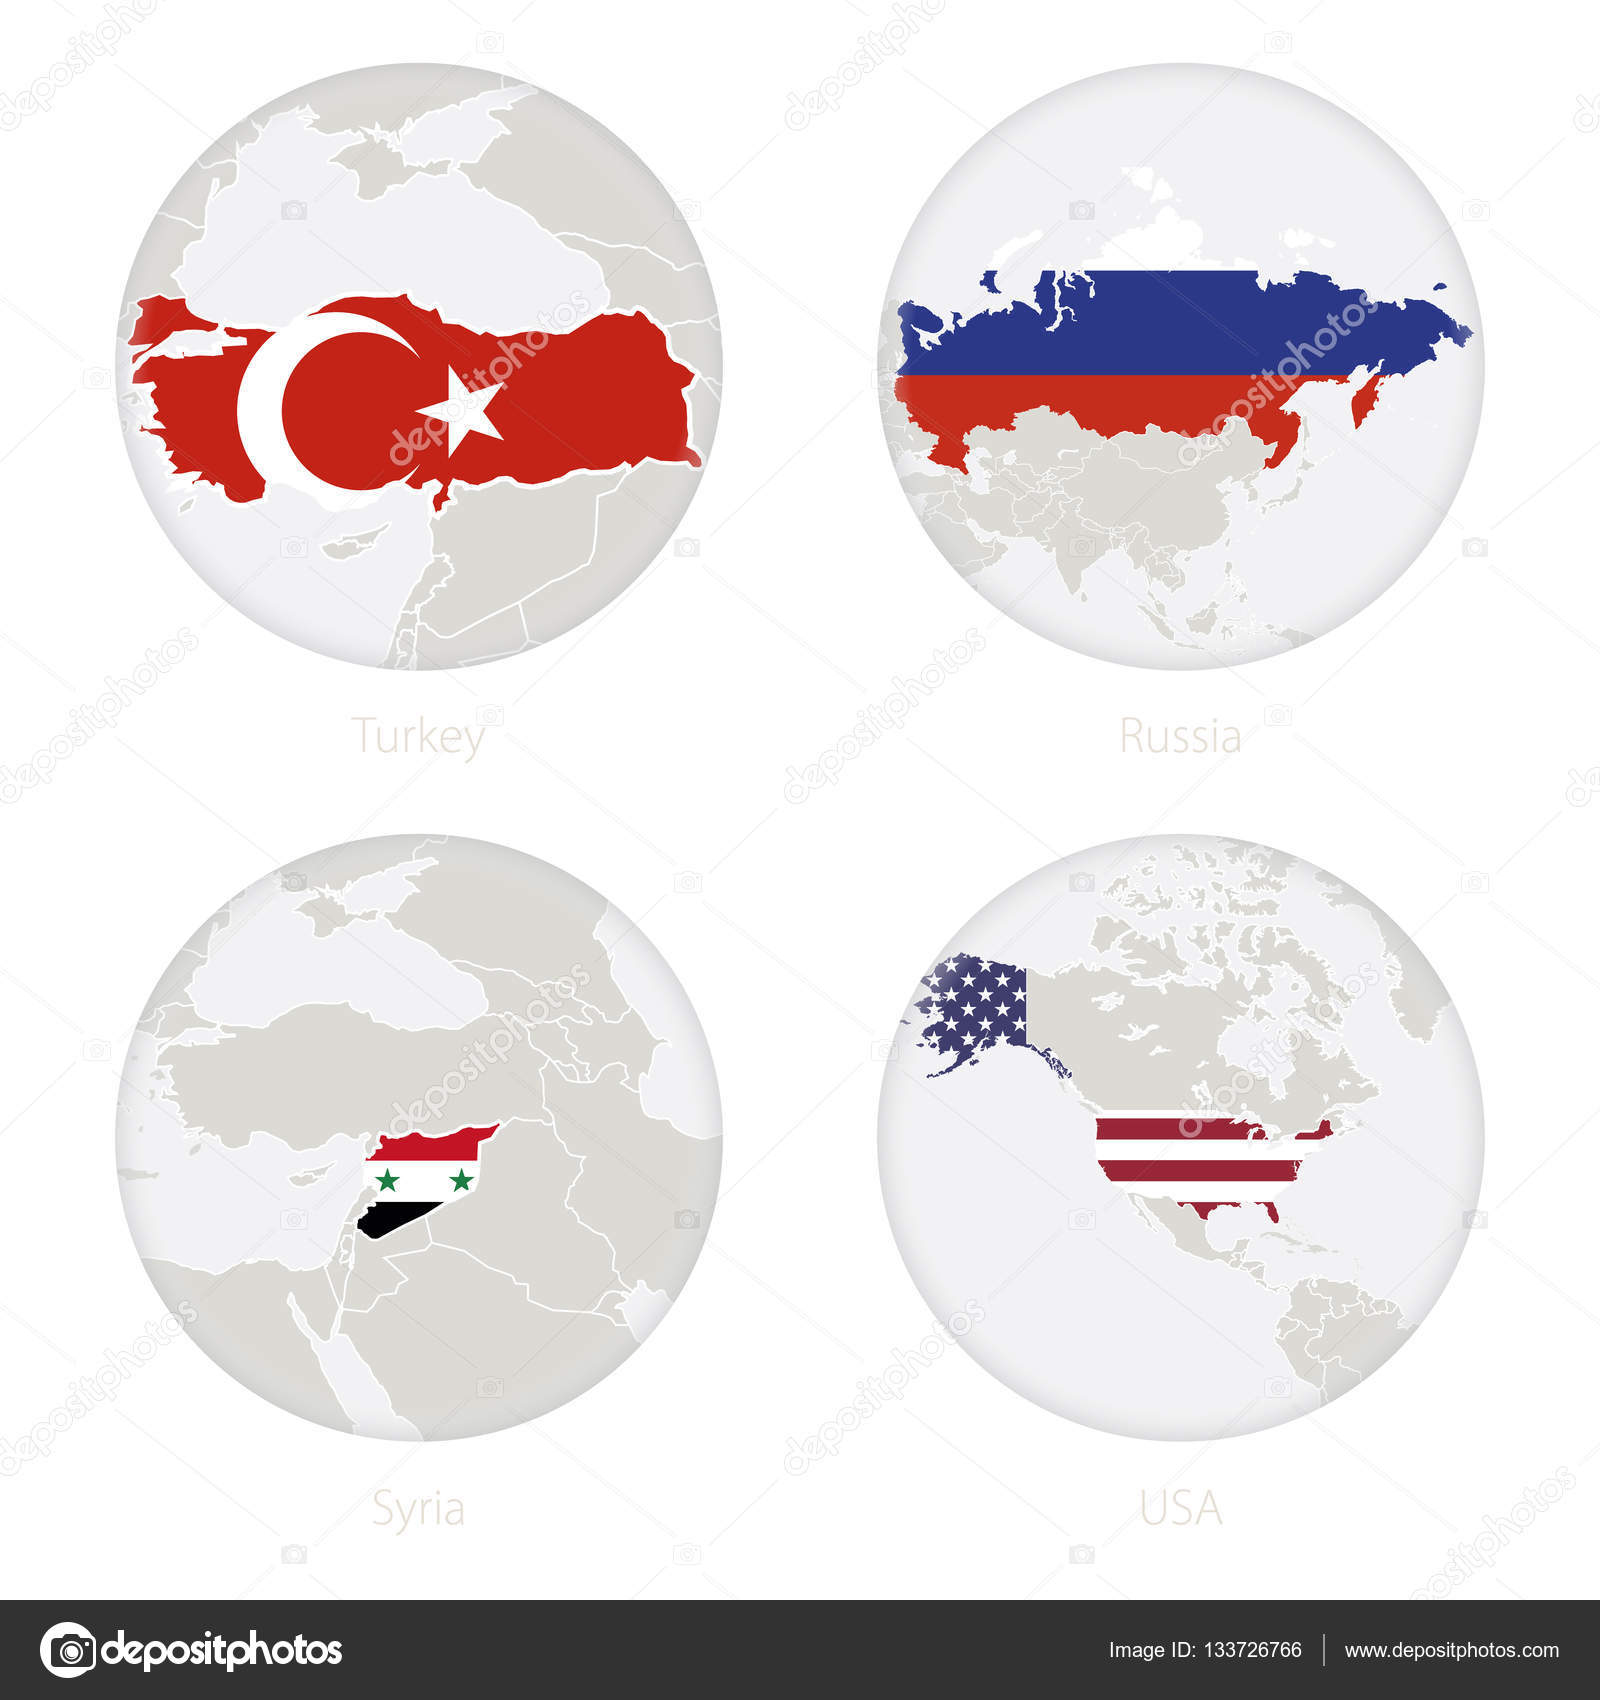 Turkey Russia Syria Usa Map Contour And National Flag In A Circle